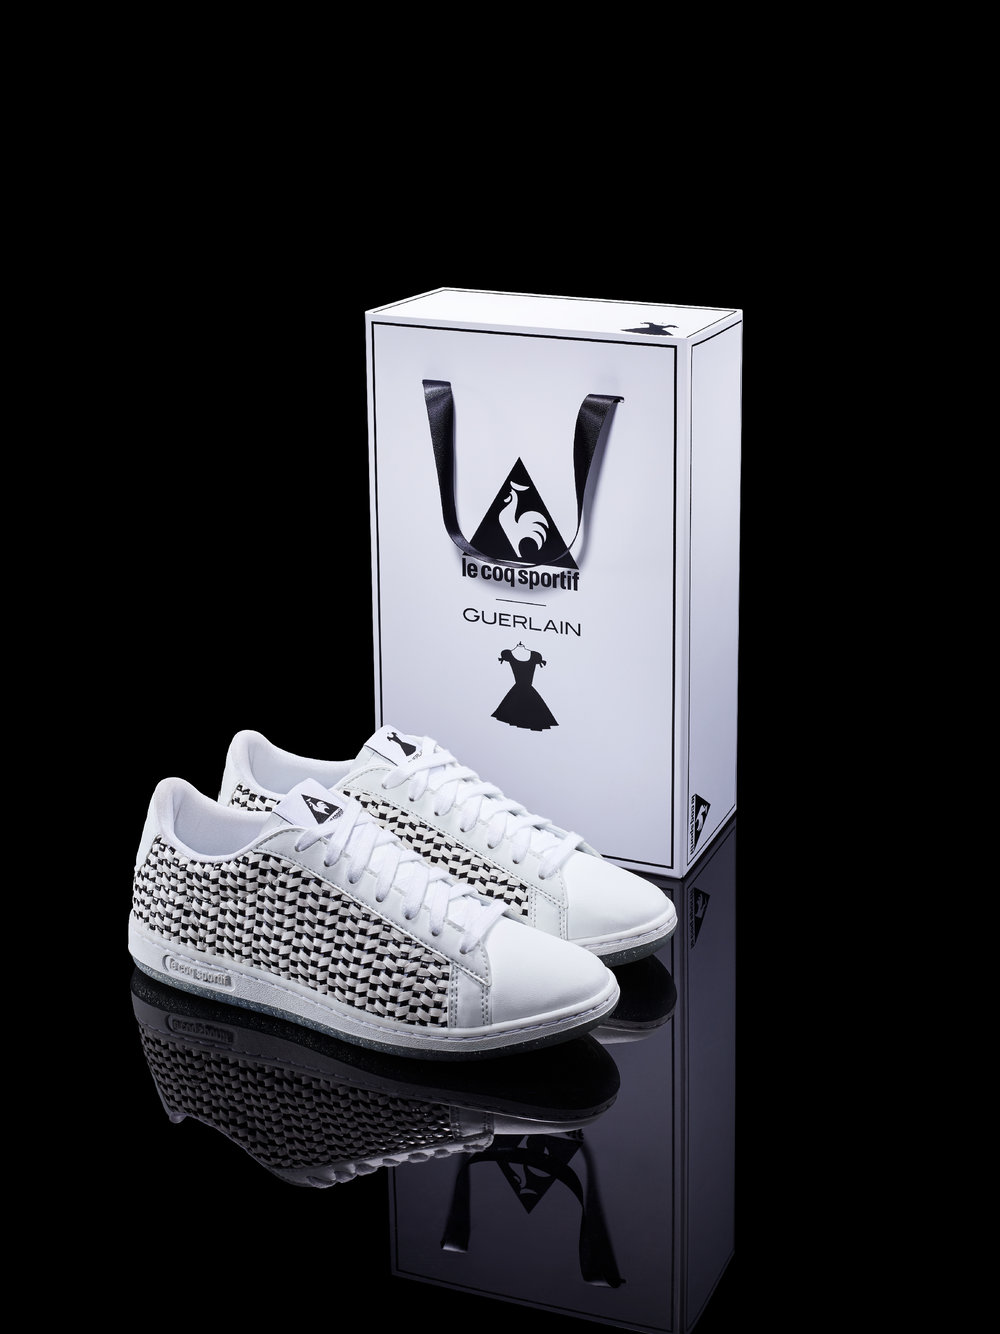 0066ba4fcf8e The le coq sportif x La Petite Robe Noire capsule collection is now  available at selected retailers.